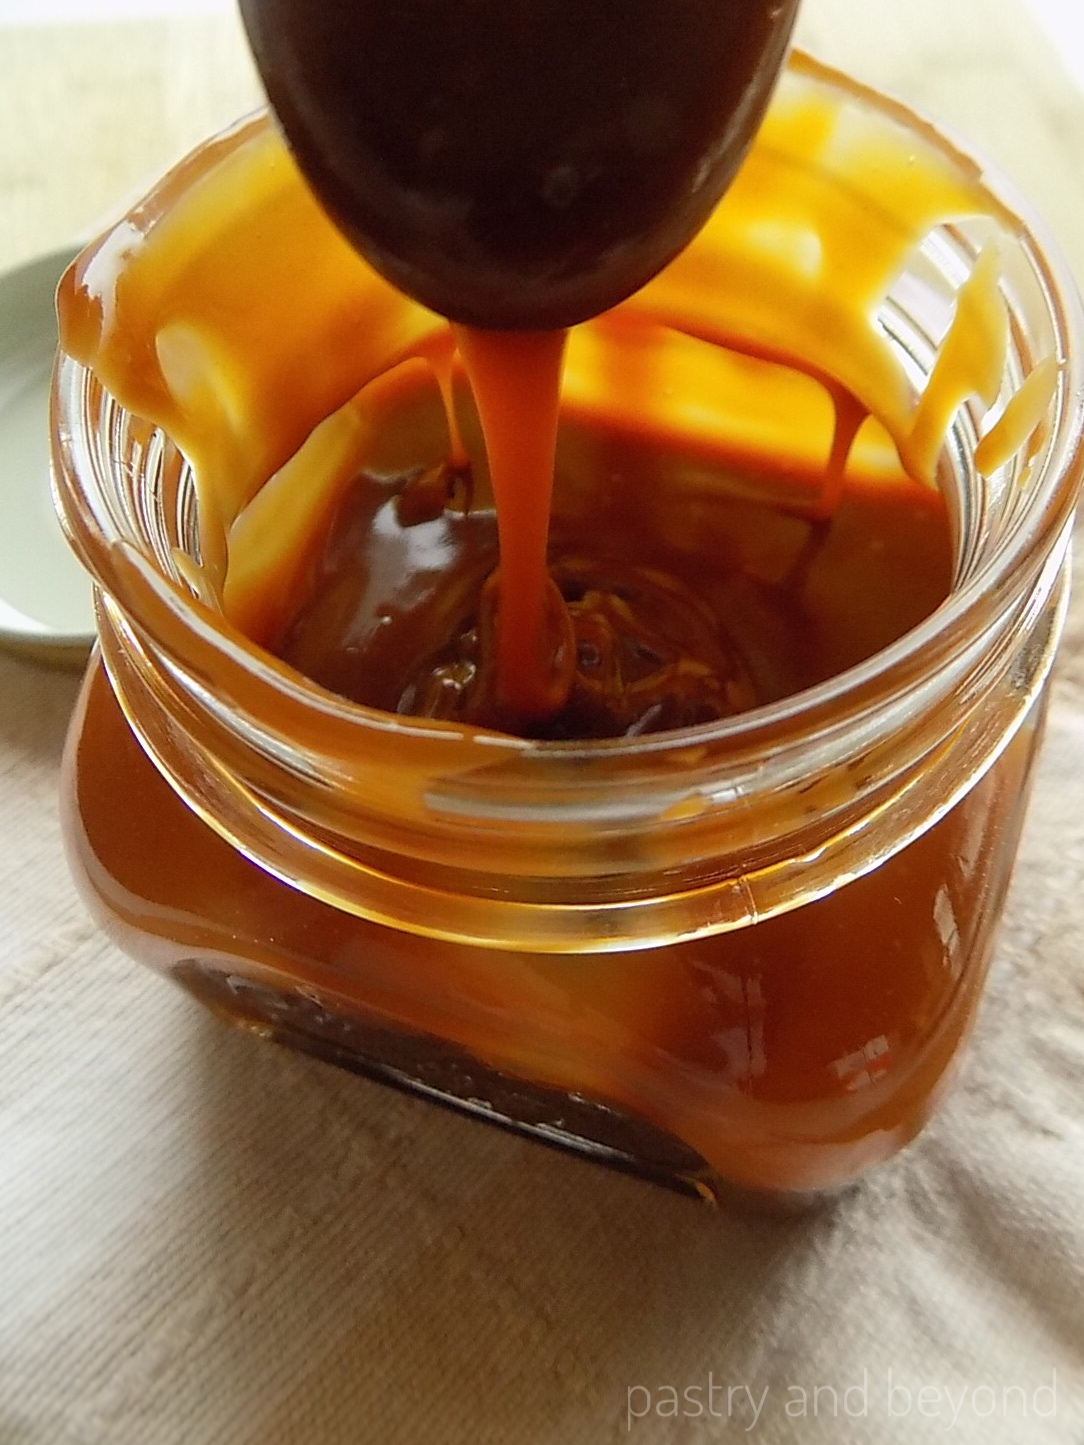 Homemade Caramel Sauce dripping from a spoon.